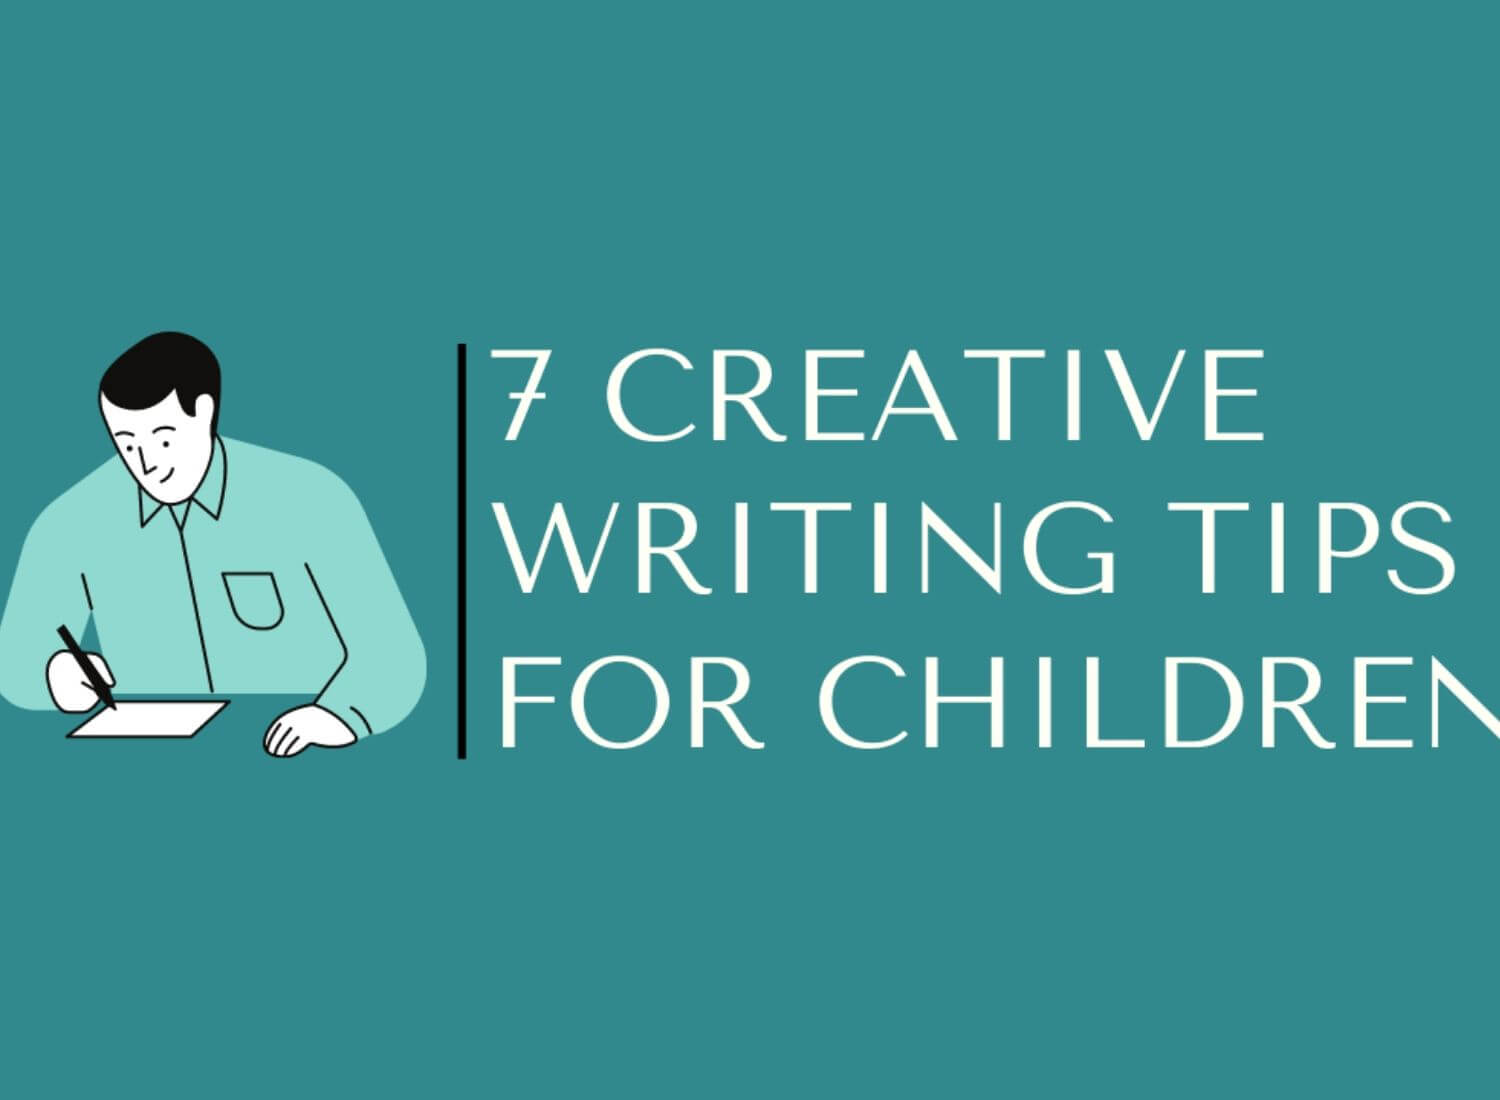 7 Creative Writing Tips For Children